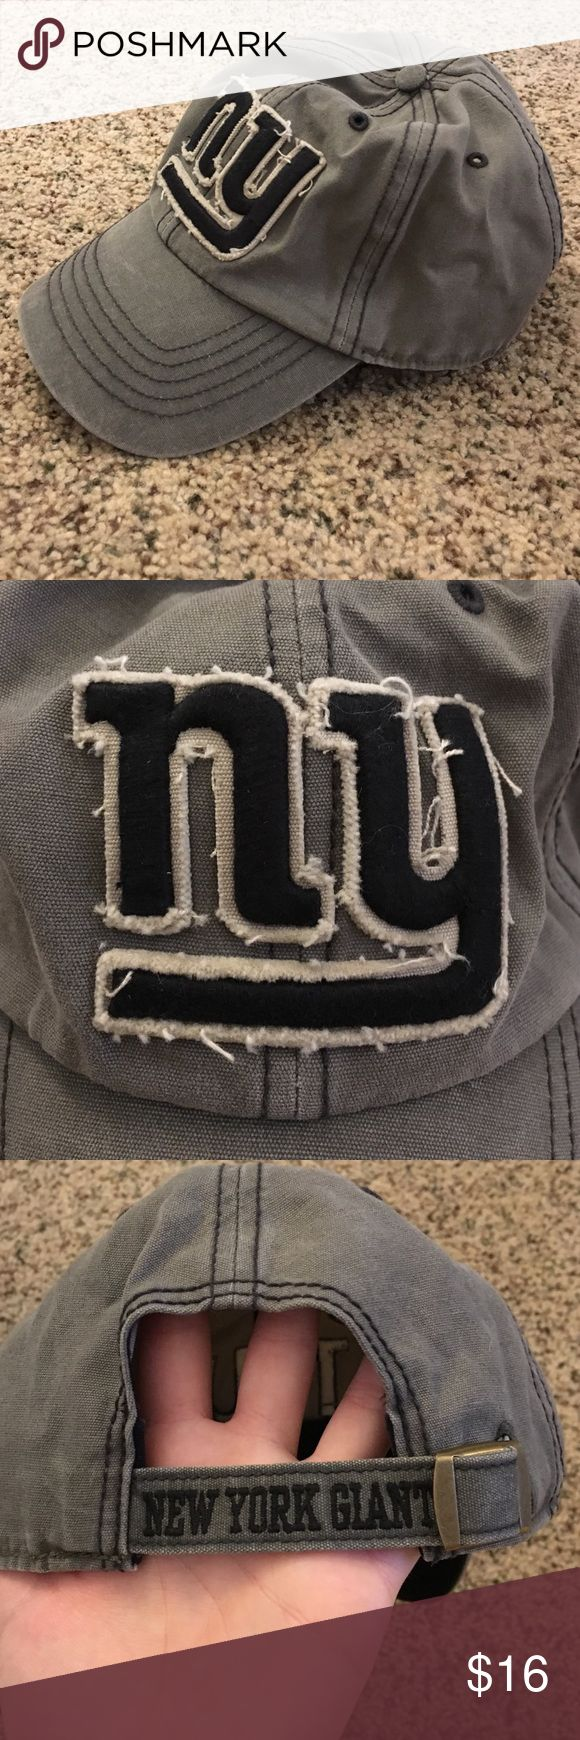 "NWOT NY Giants hat Brand new NYG hat. Medium gray color with navy blue distressed logo. Adjustable back with cool ""New York Giants"" detail. NFL Team Apparel. NFL Accessories Hats"